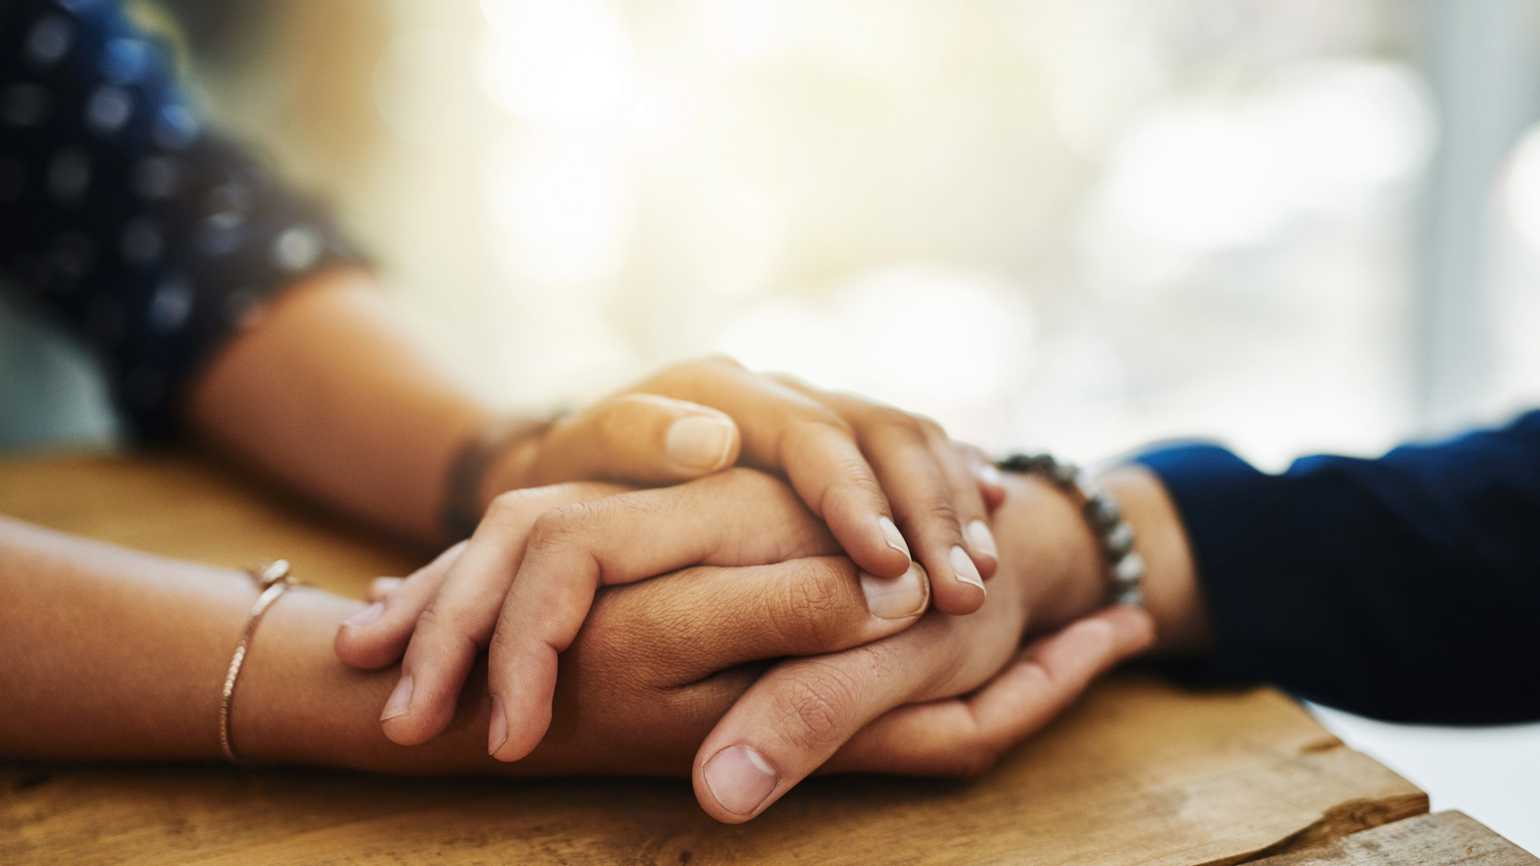 Closeup shot of two unrecognizable people holding hands in comfort.